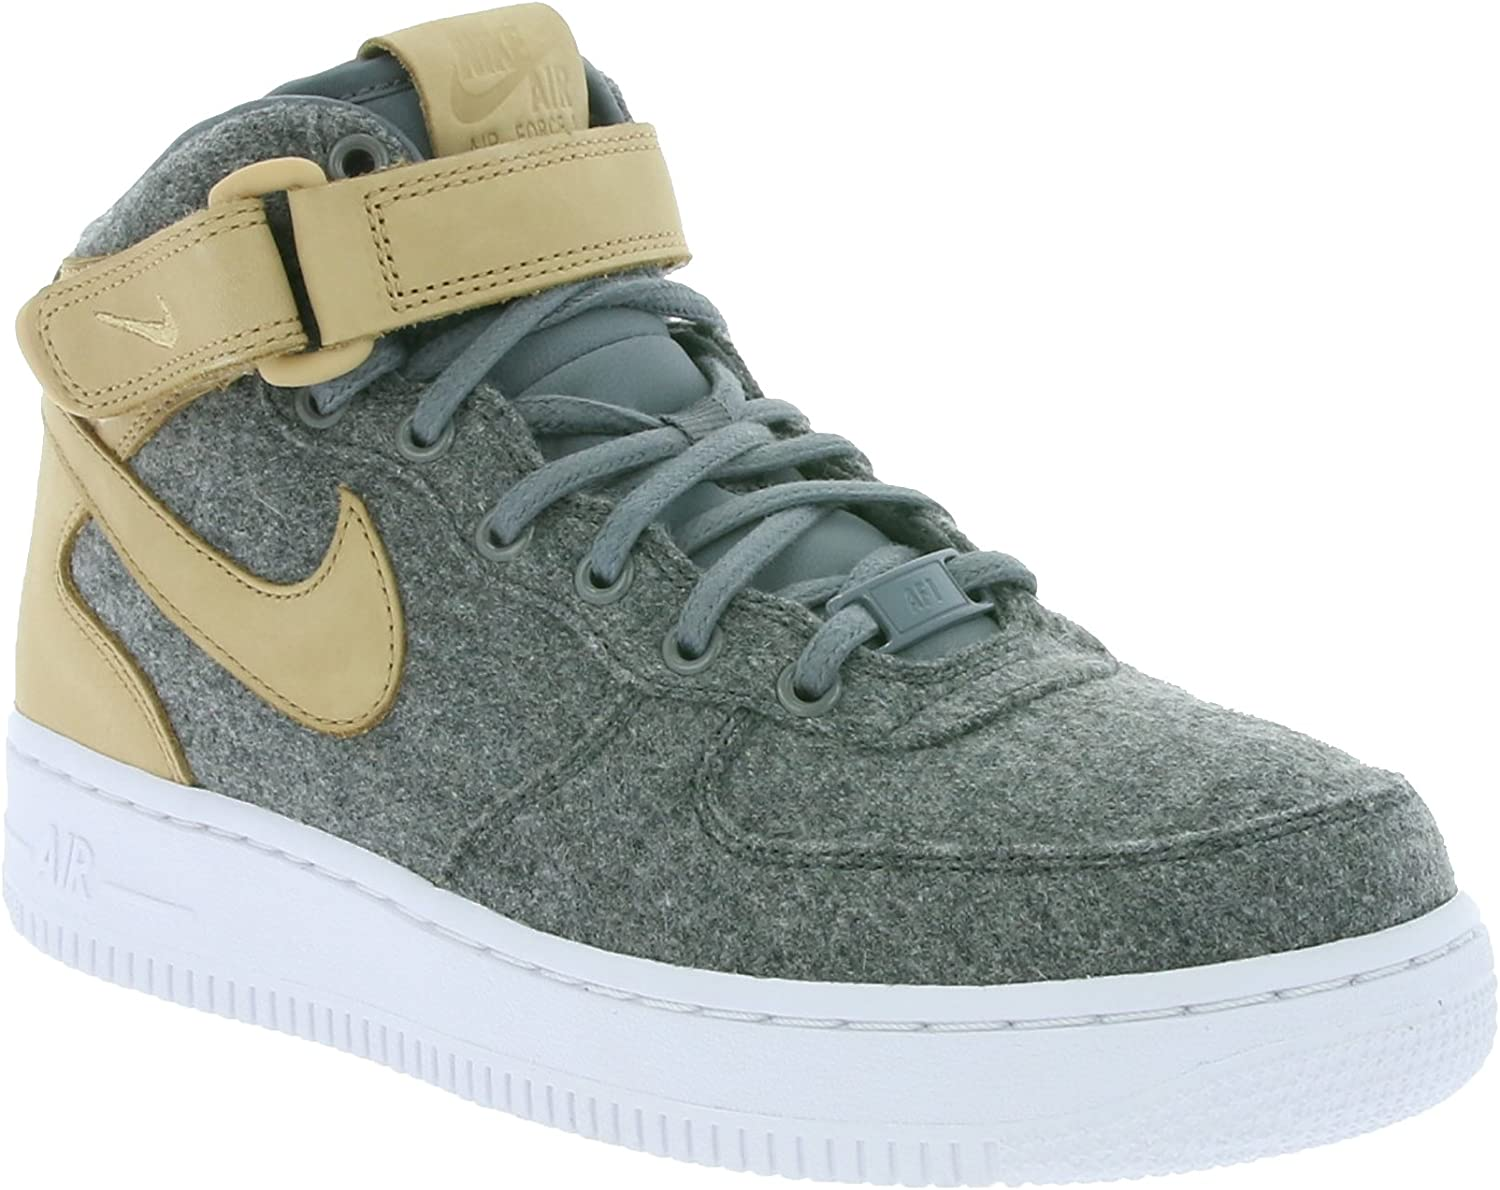 Nike air Force 1 '07 mid PRM Womens Trainers 805292 Sneakers Shoes